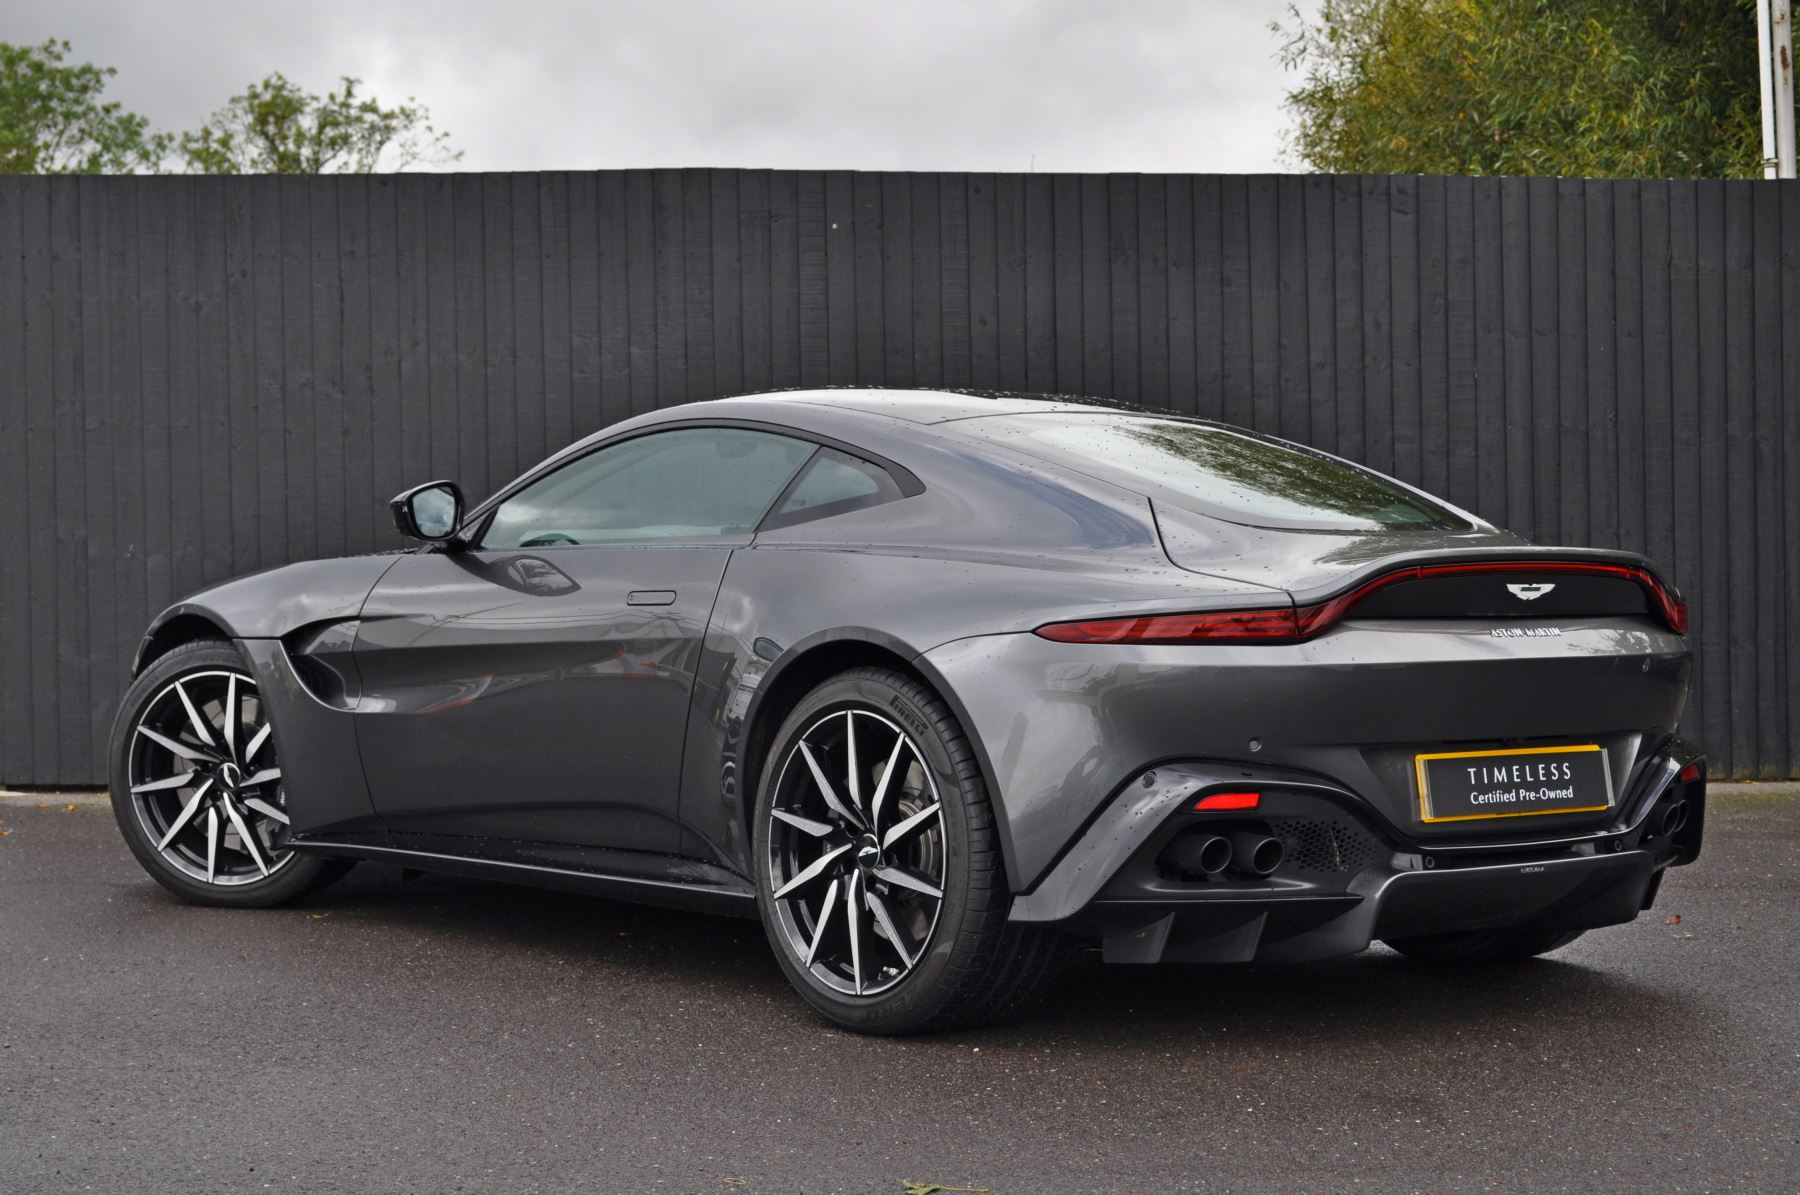 Aston Martin New Vantage 2dr ZF 8 Speed image 7